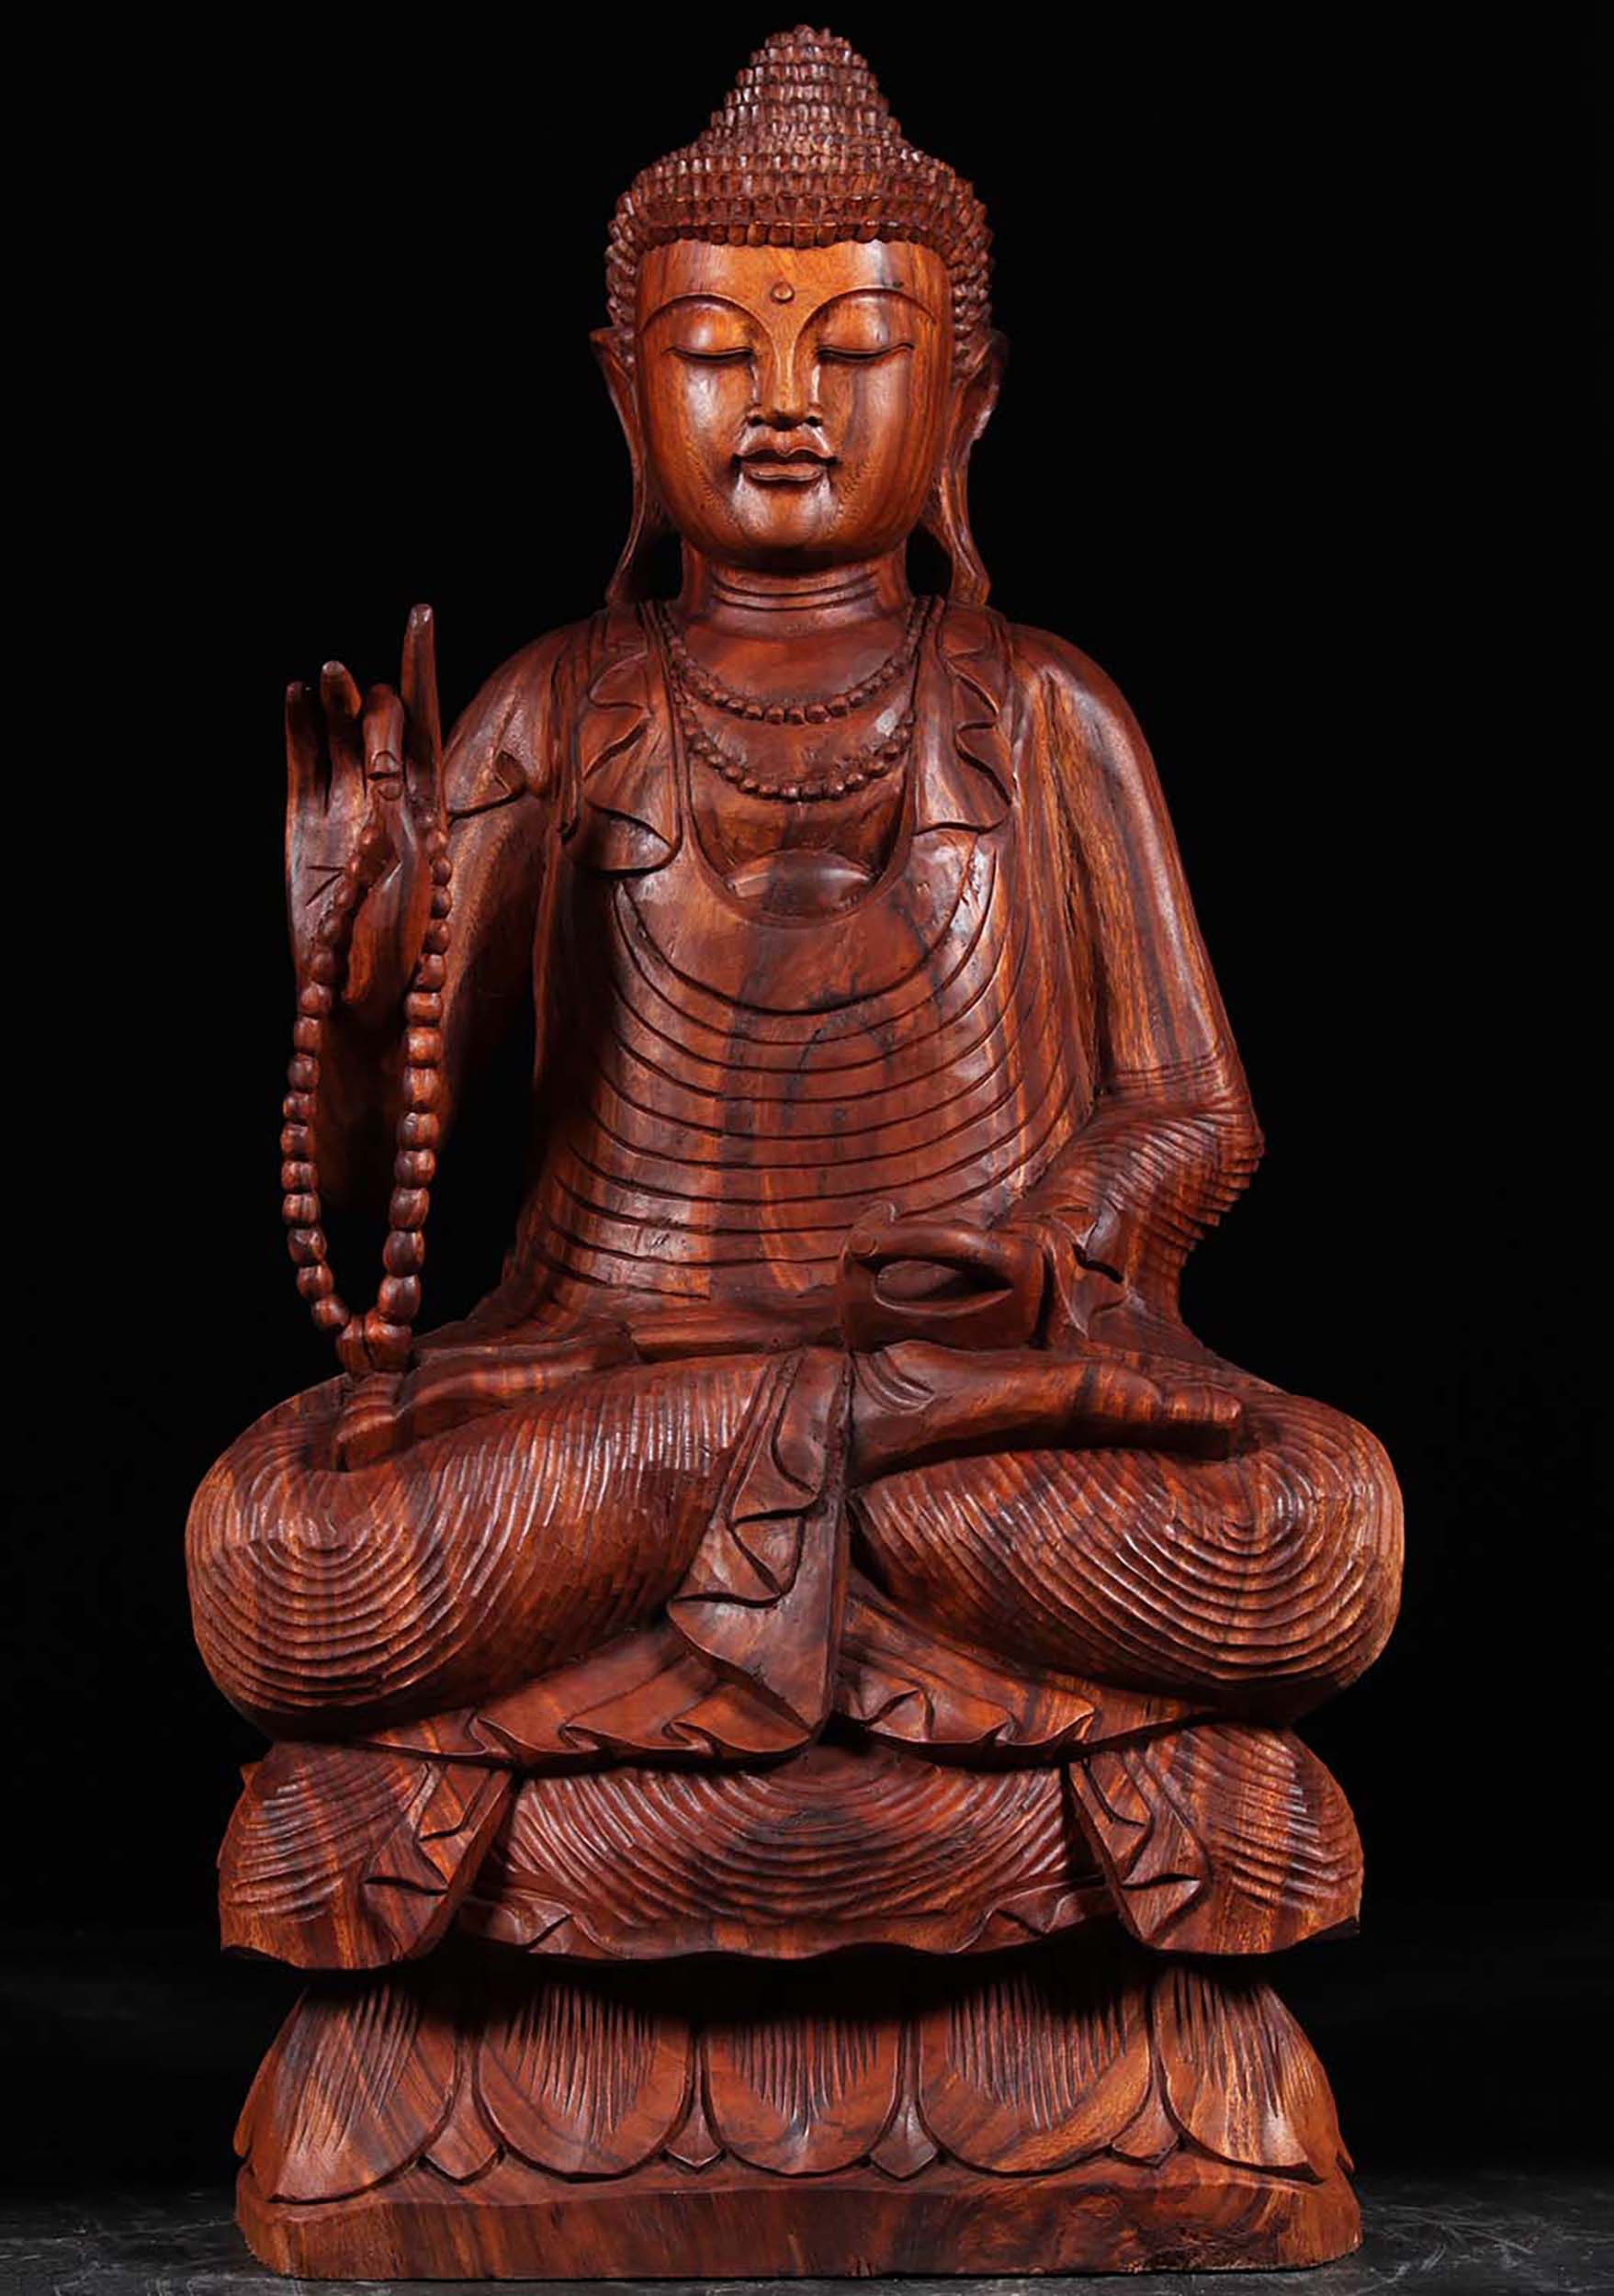 The Buddha First Taught Four Le Truths And Eightfold Path